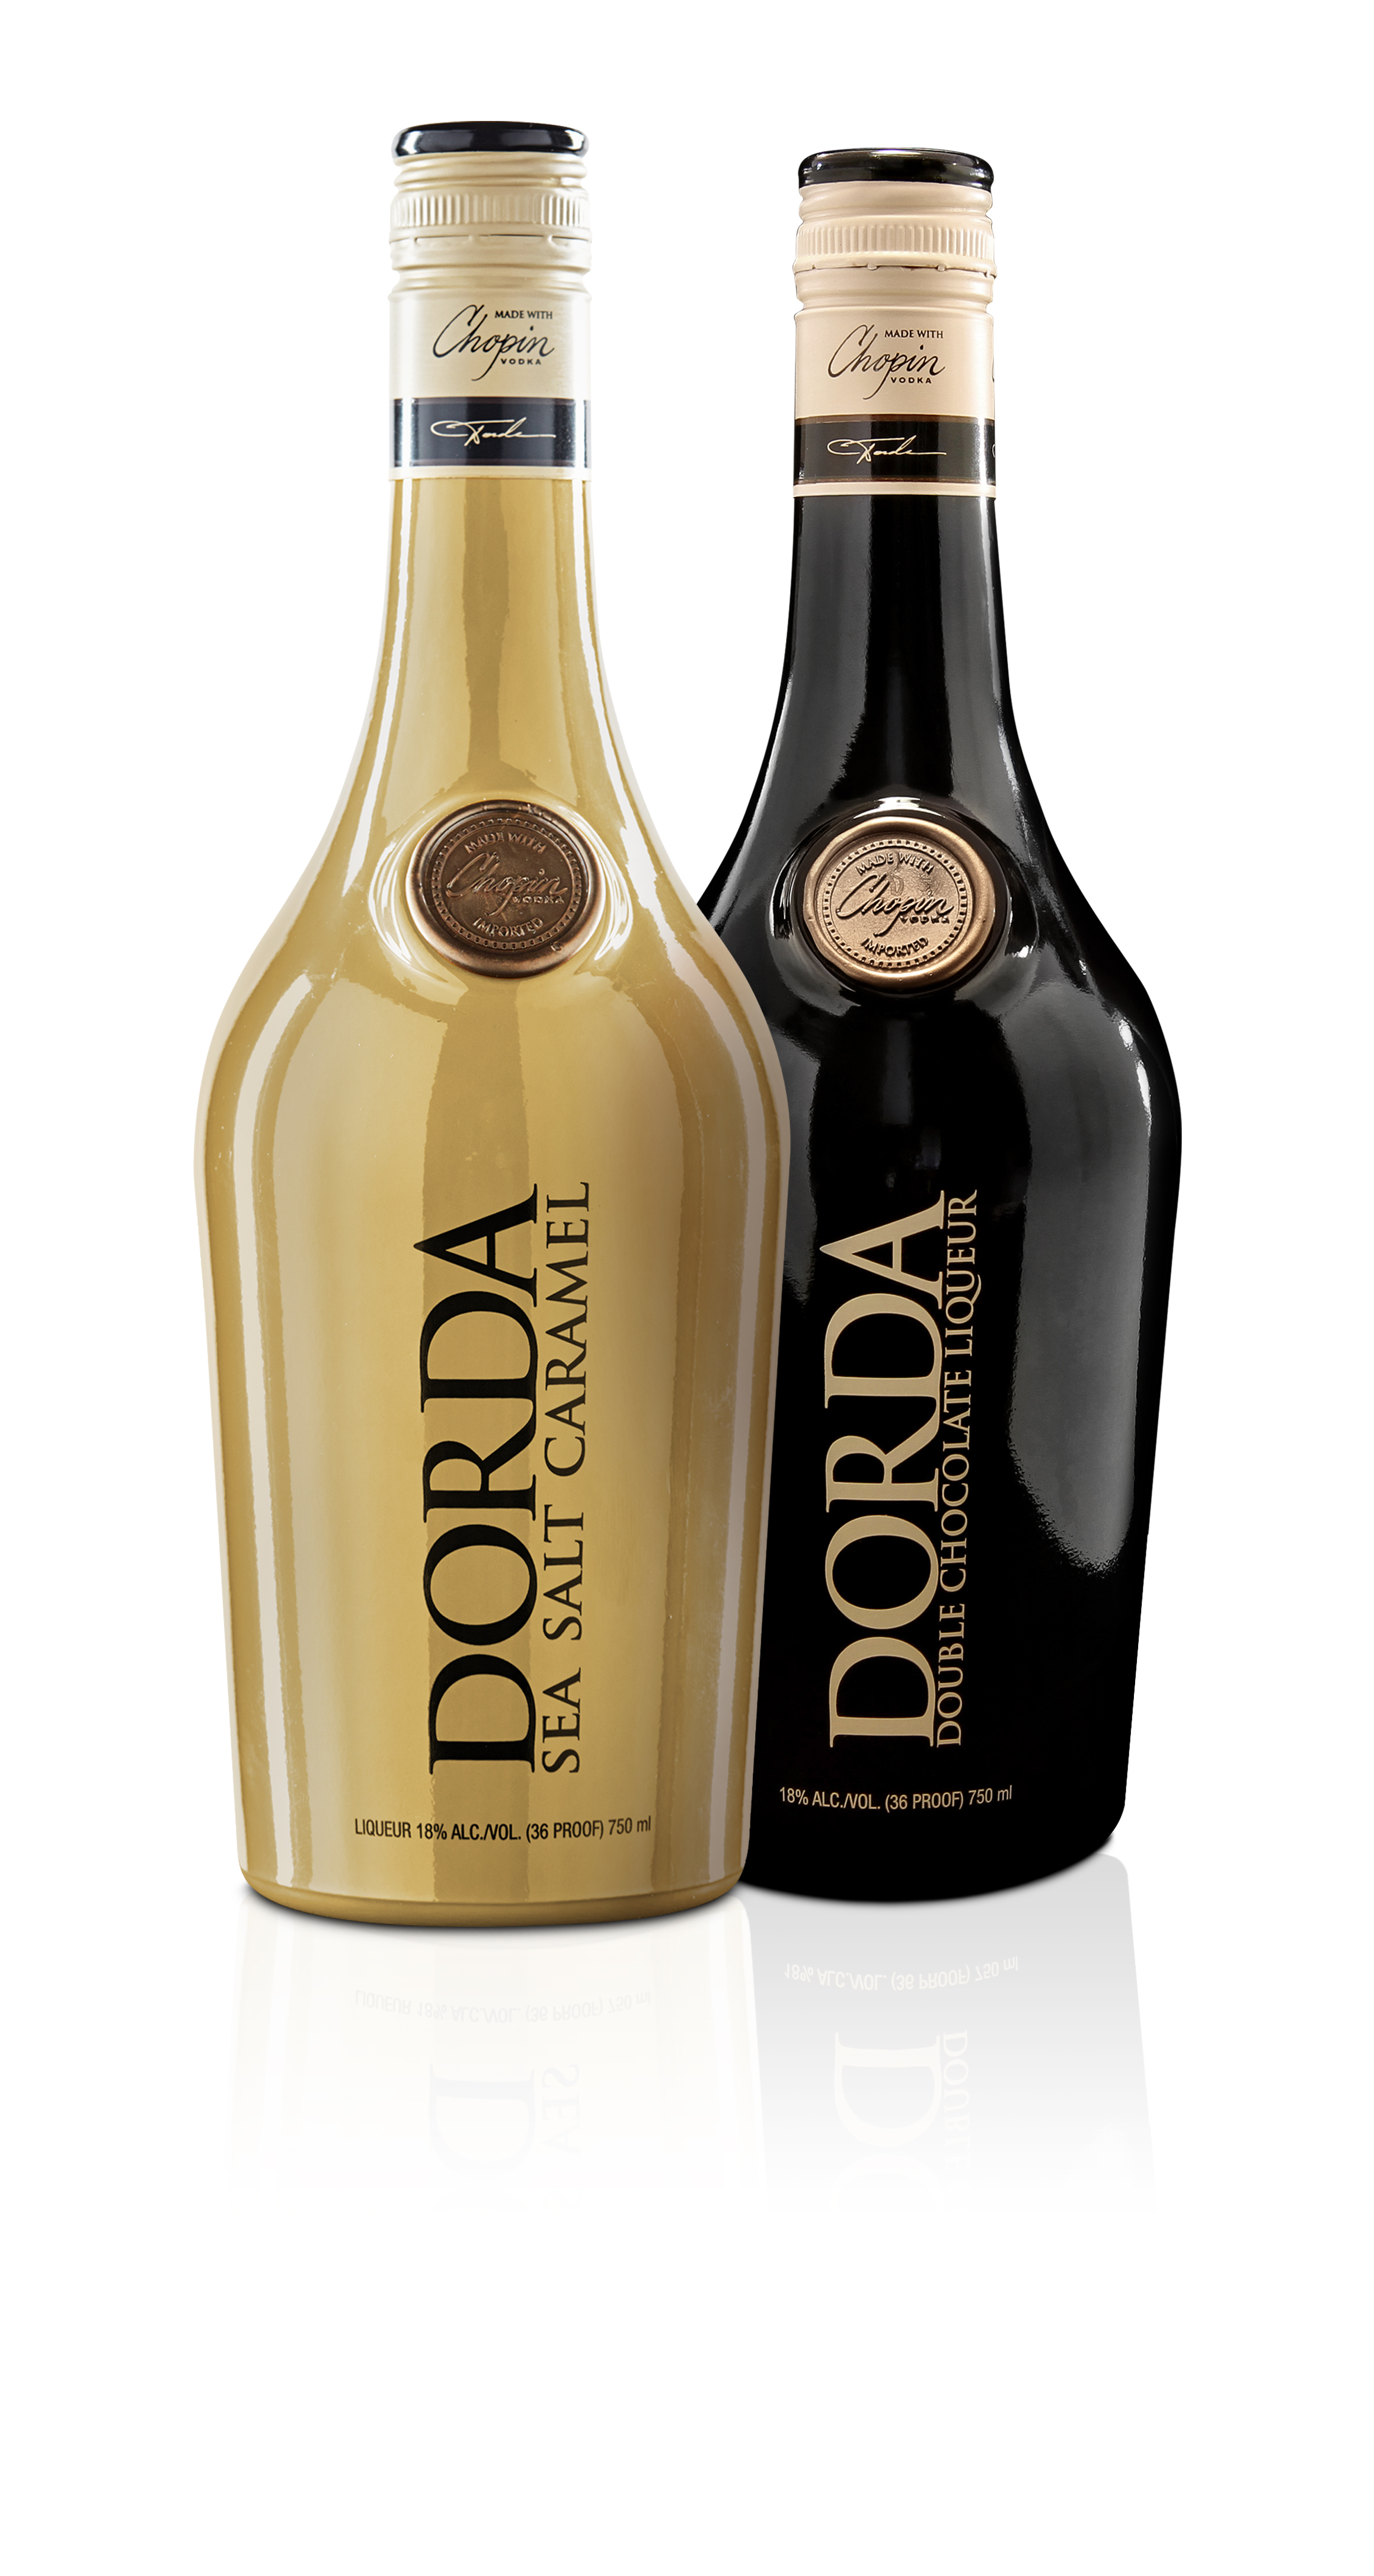 Dorda Products